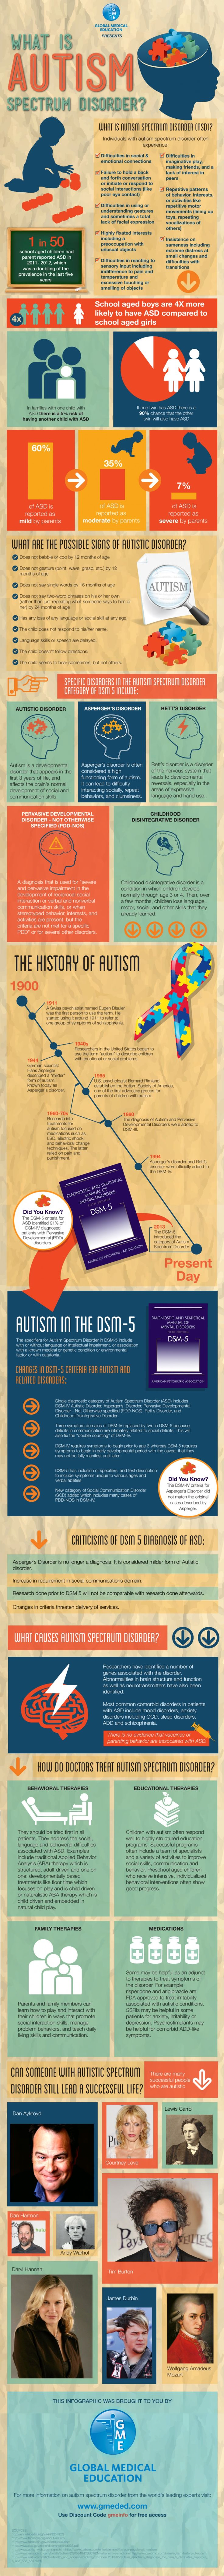 903 best Autism & Spectrum images on Pinterest